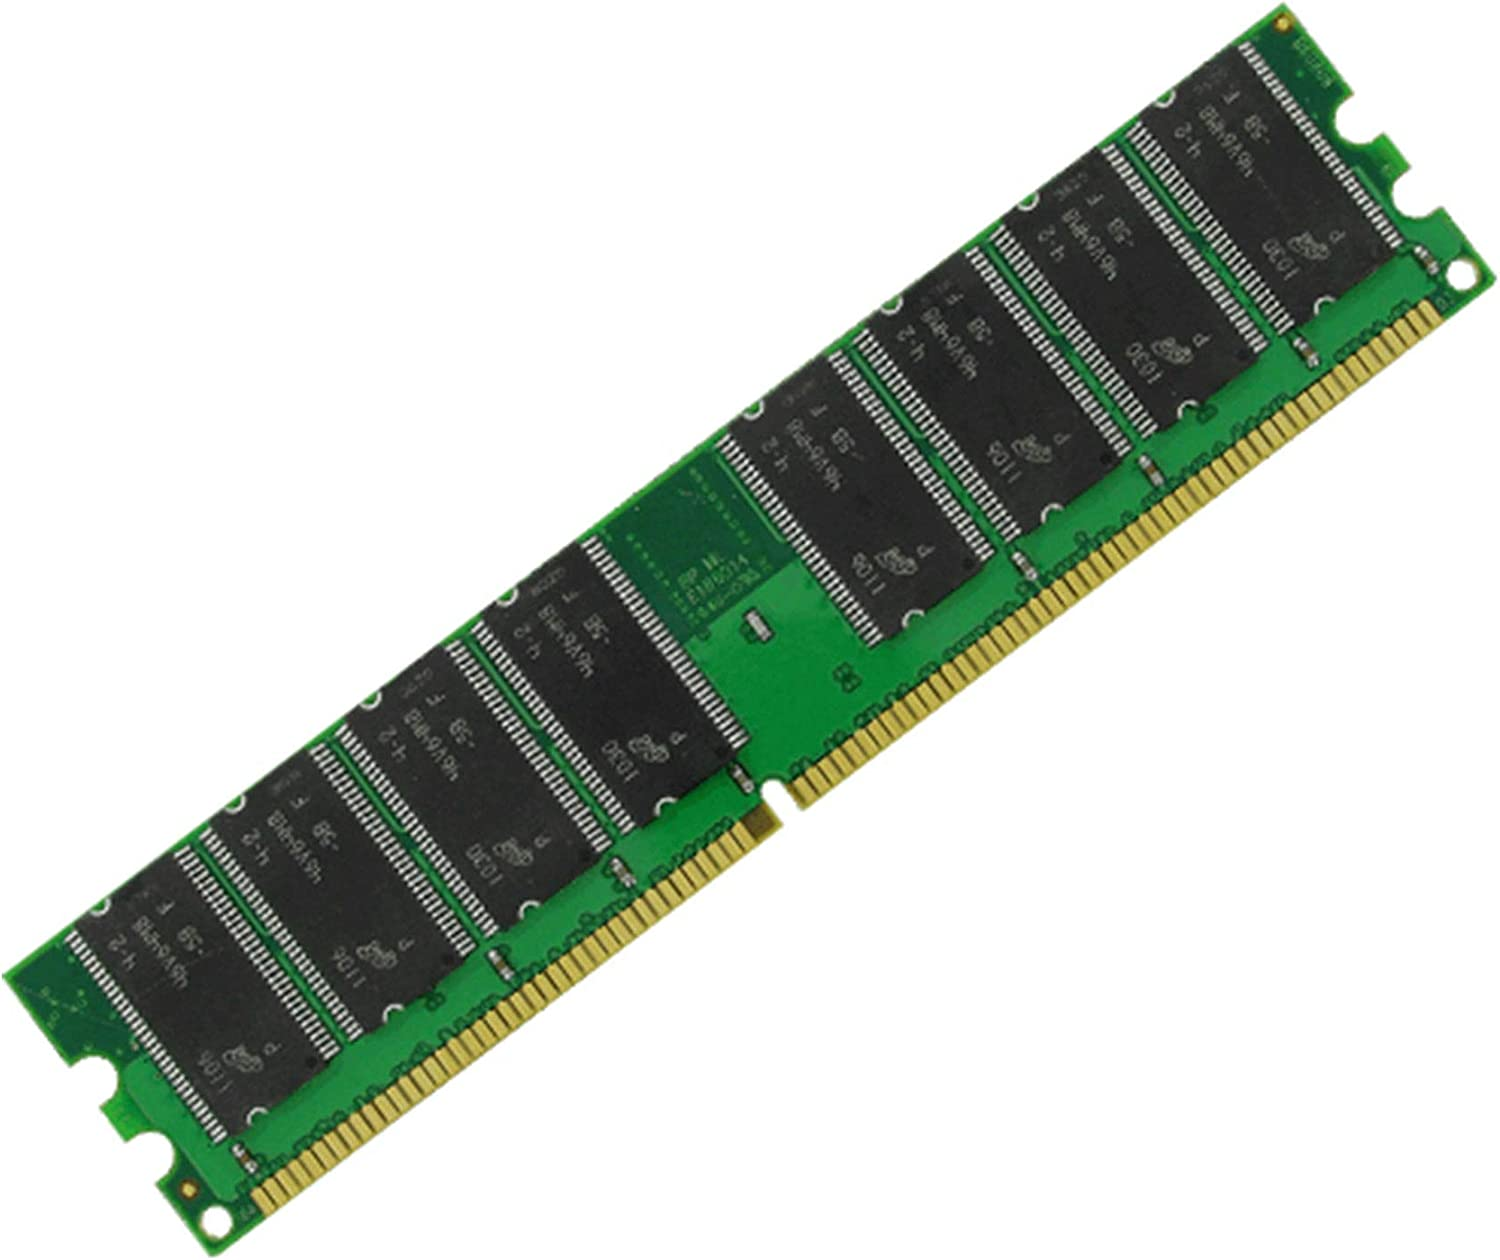 Cisco Remanufactured 32-GB DDR4 Registered Dual in-Line Memory Module for Select Cisco Blade and Rack Servers, 2666-MHz RDIMM, 2Rx4, Enhanced Limited Lifetime Hardware Warranty (UCS-MR-X32G2RSH-RF)